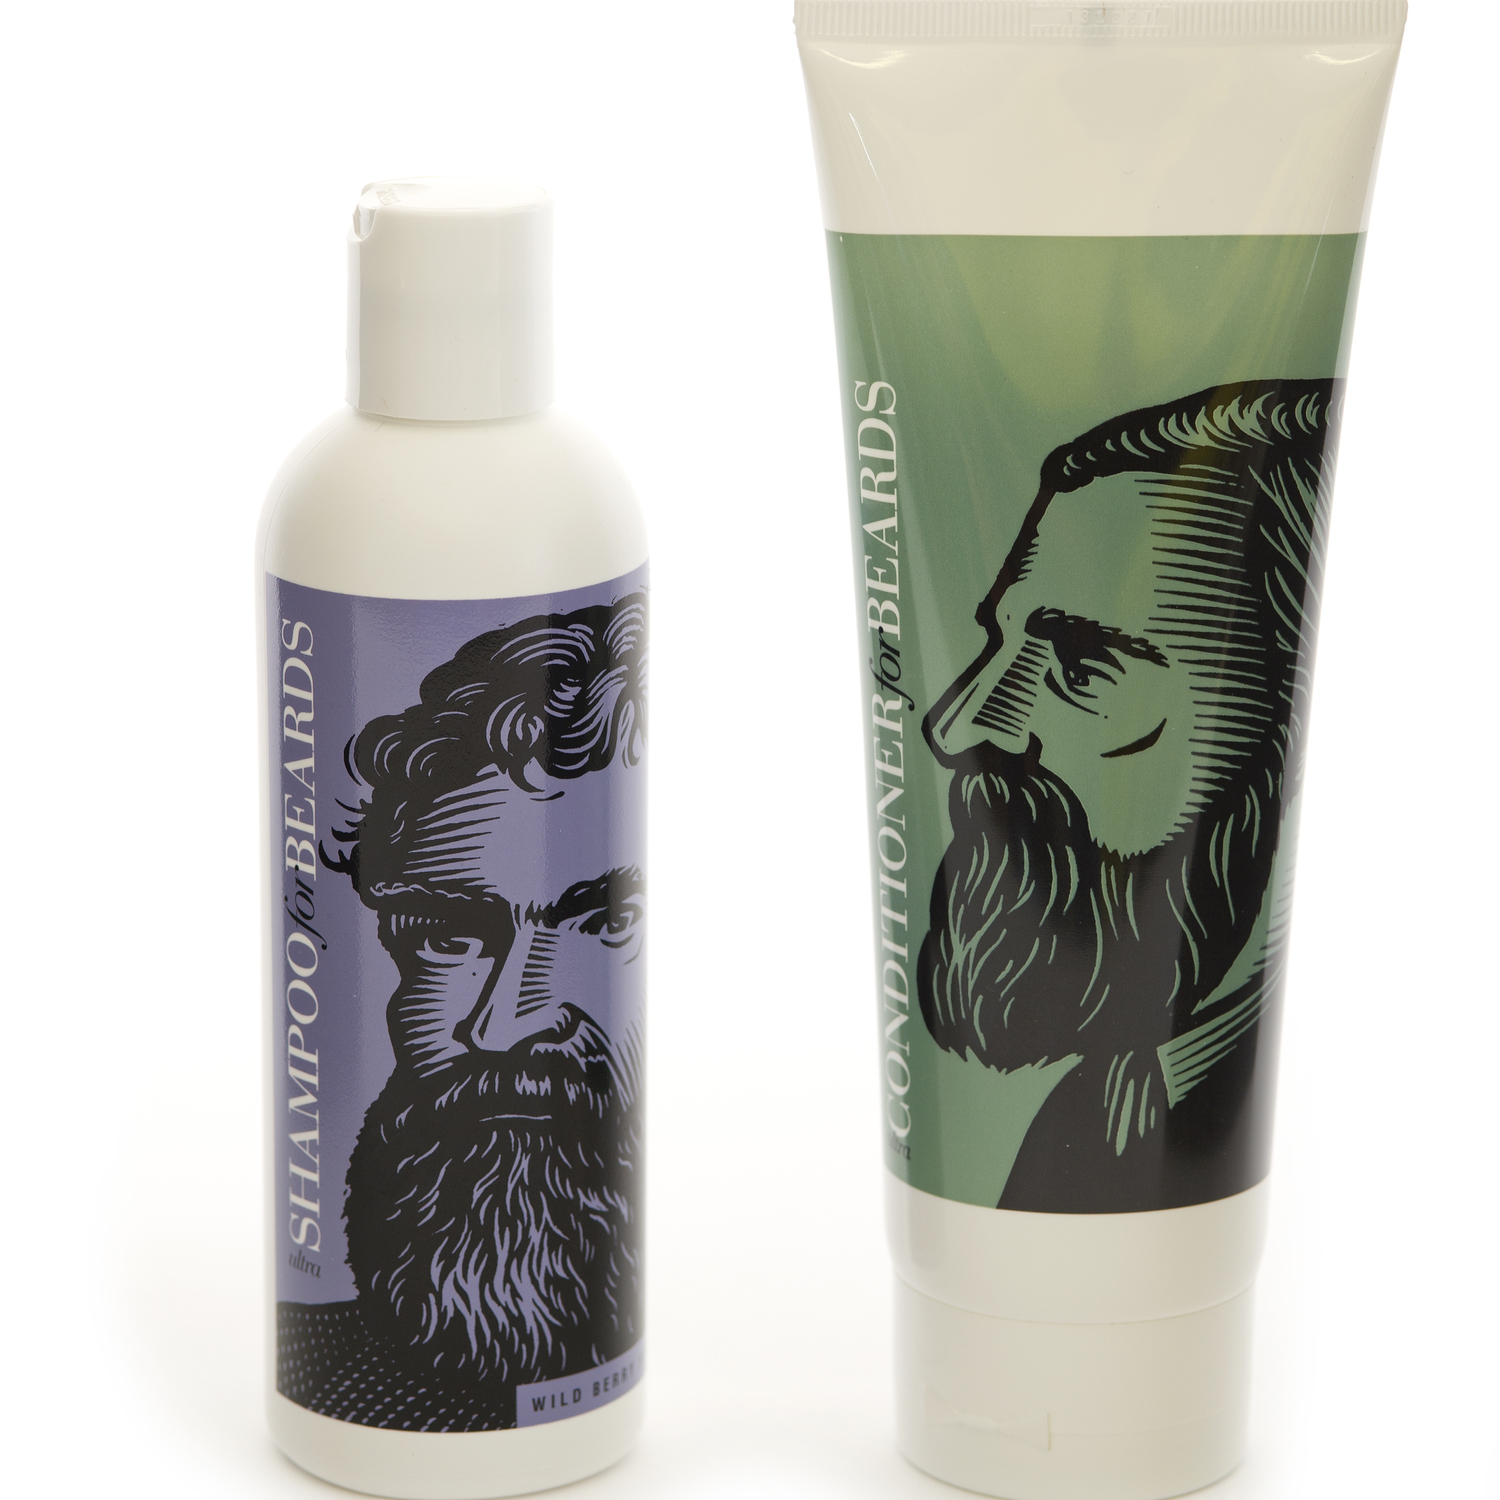 Beardsley Shampoo & Conditioner, £14.95 each Pedlars